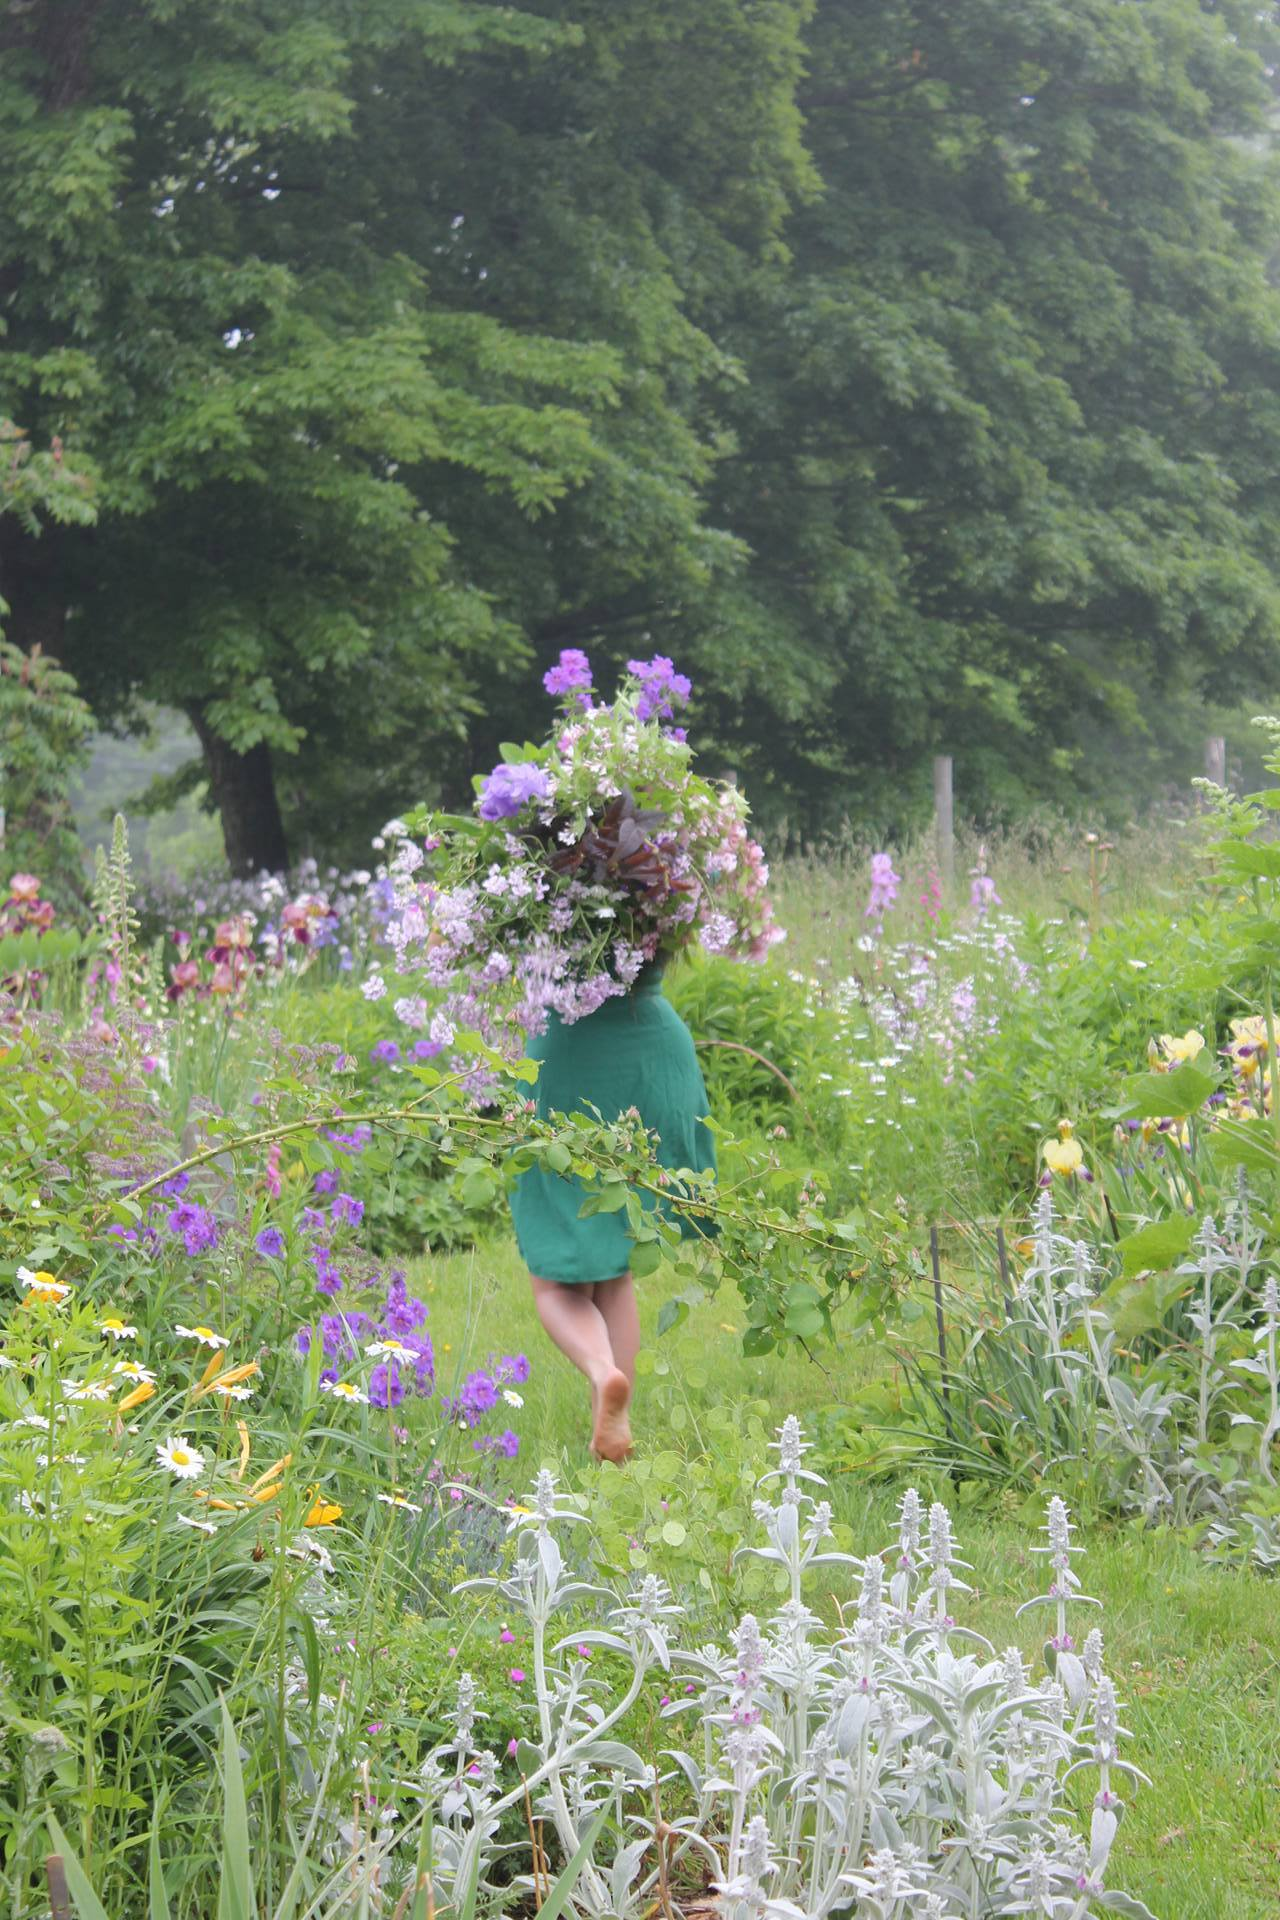 Nova Scotia flower farm and garden, Hedgerow Flower Company harvesting flowers.